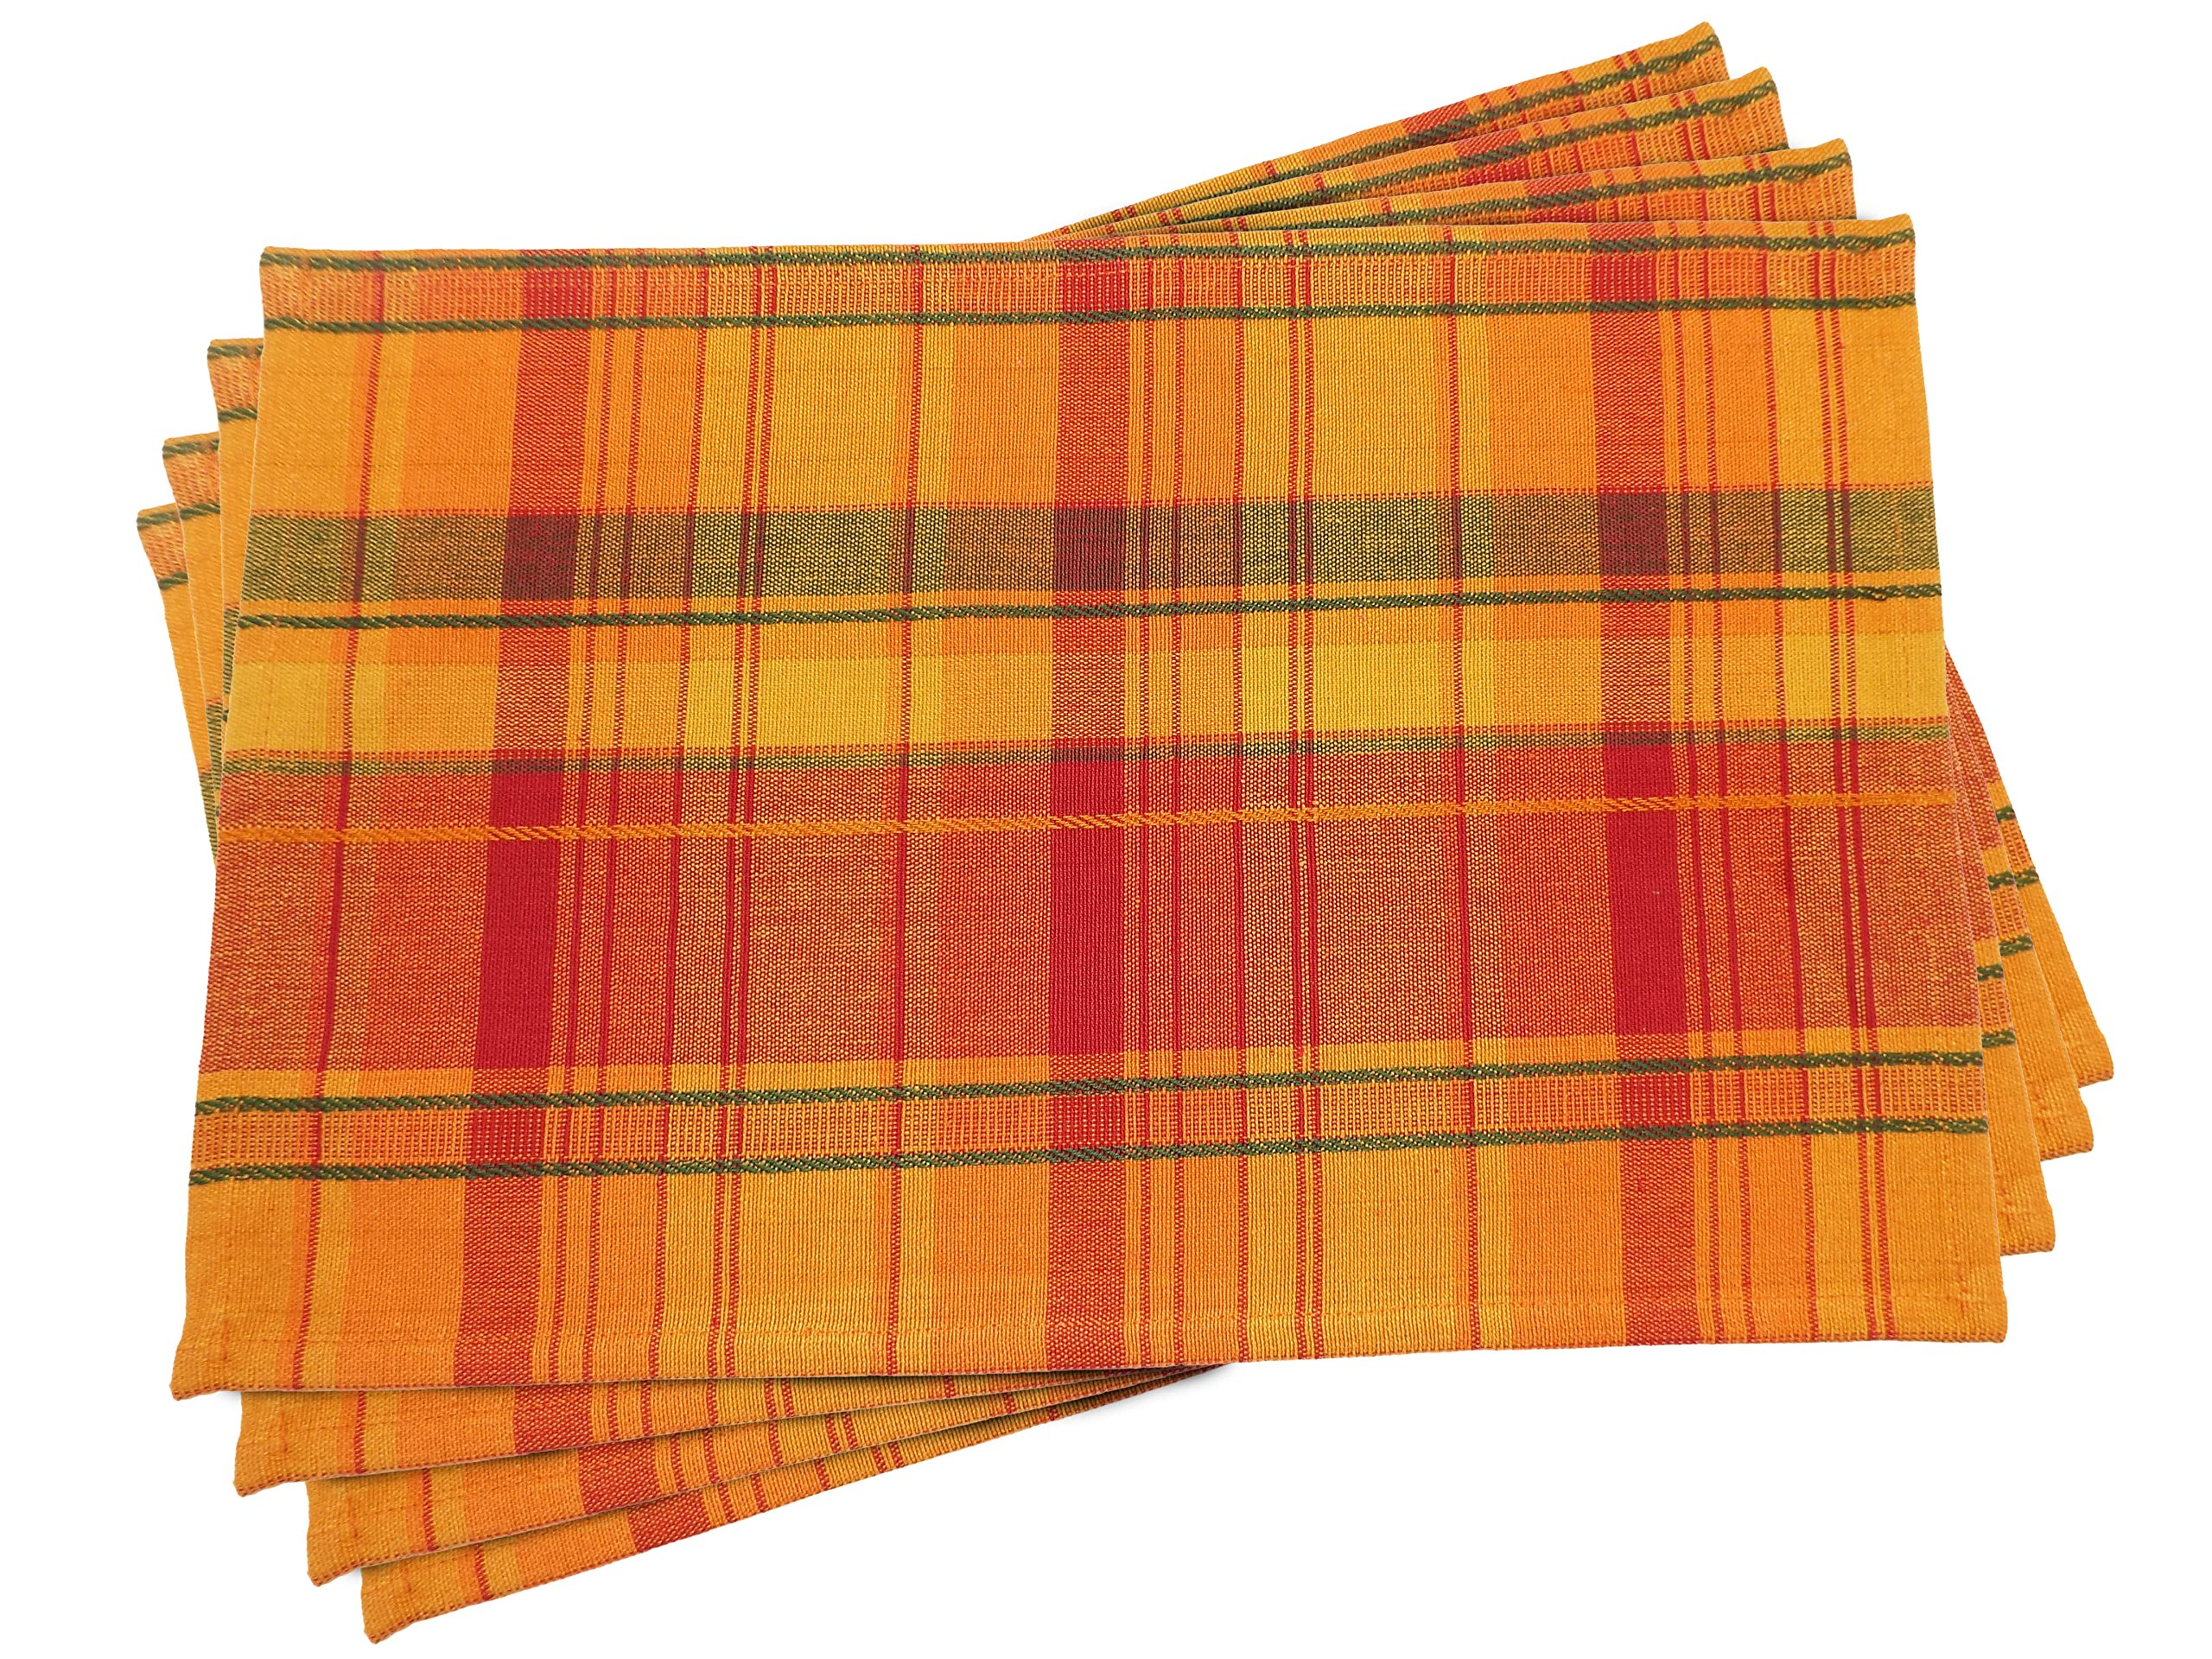 Fall Harvest Plaid Placemats - Set of 4 - 13 x 19 Inches by Bristola Home Designs (Image #1)